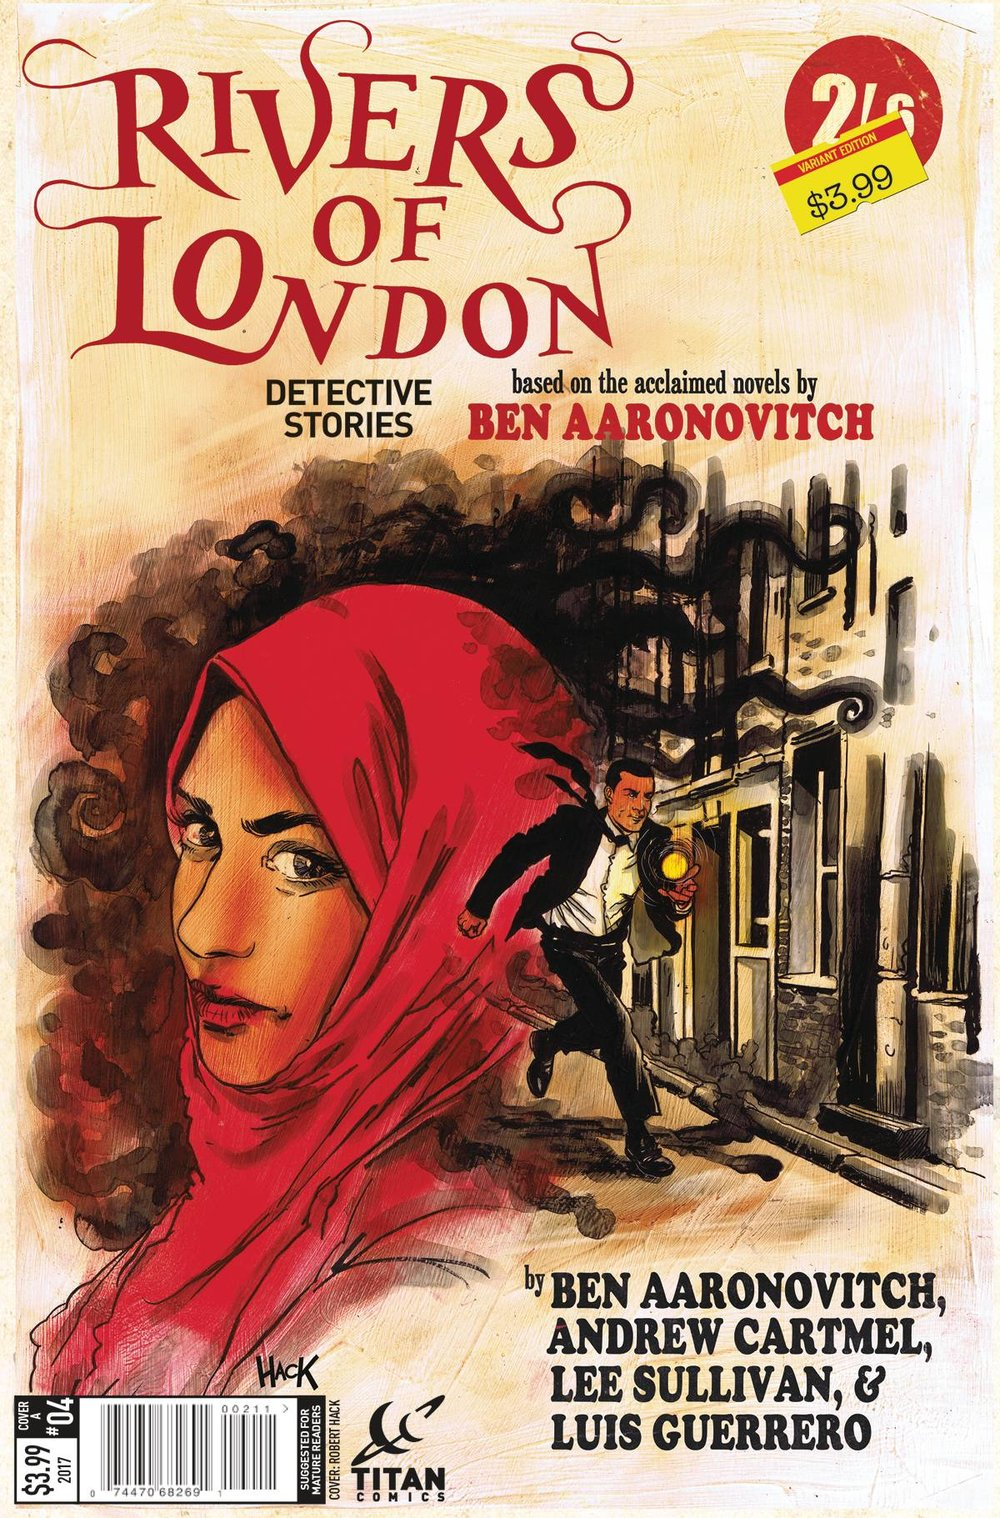 RIVERS OF LONDON DETECTIVE STORIES 4 of 4.jpg